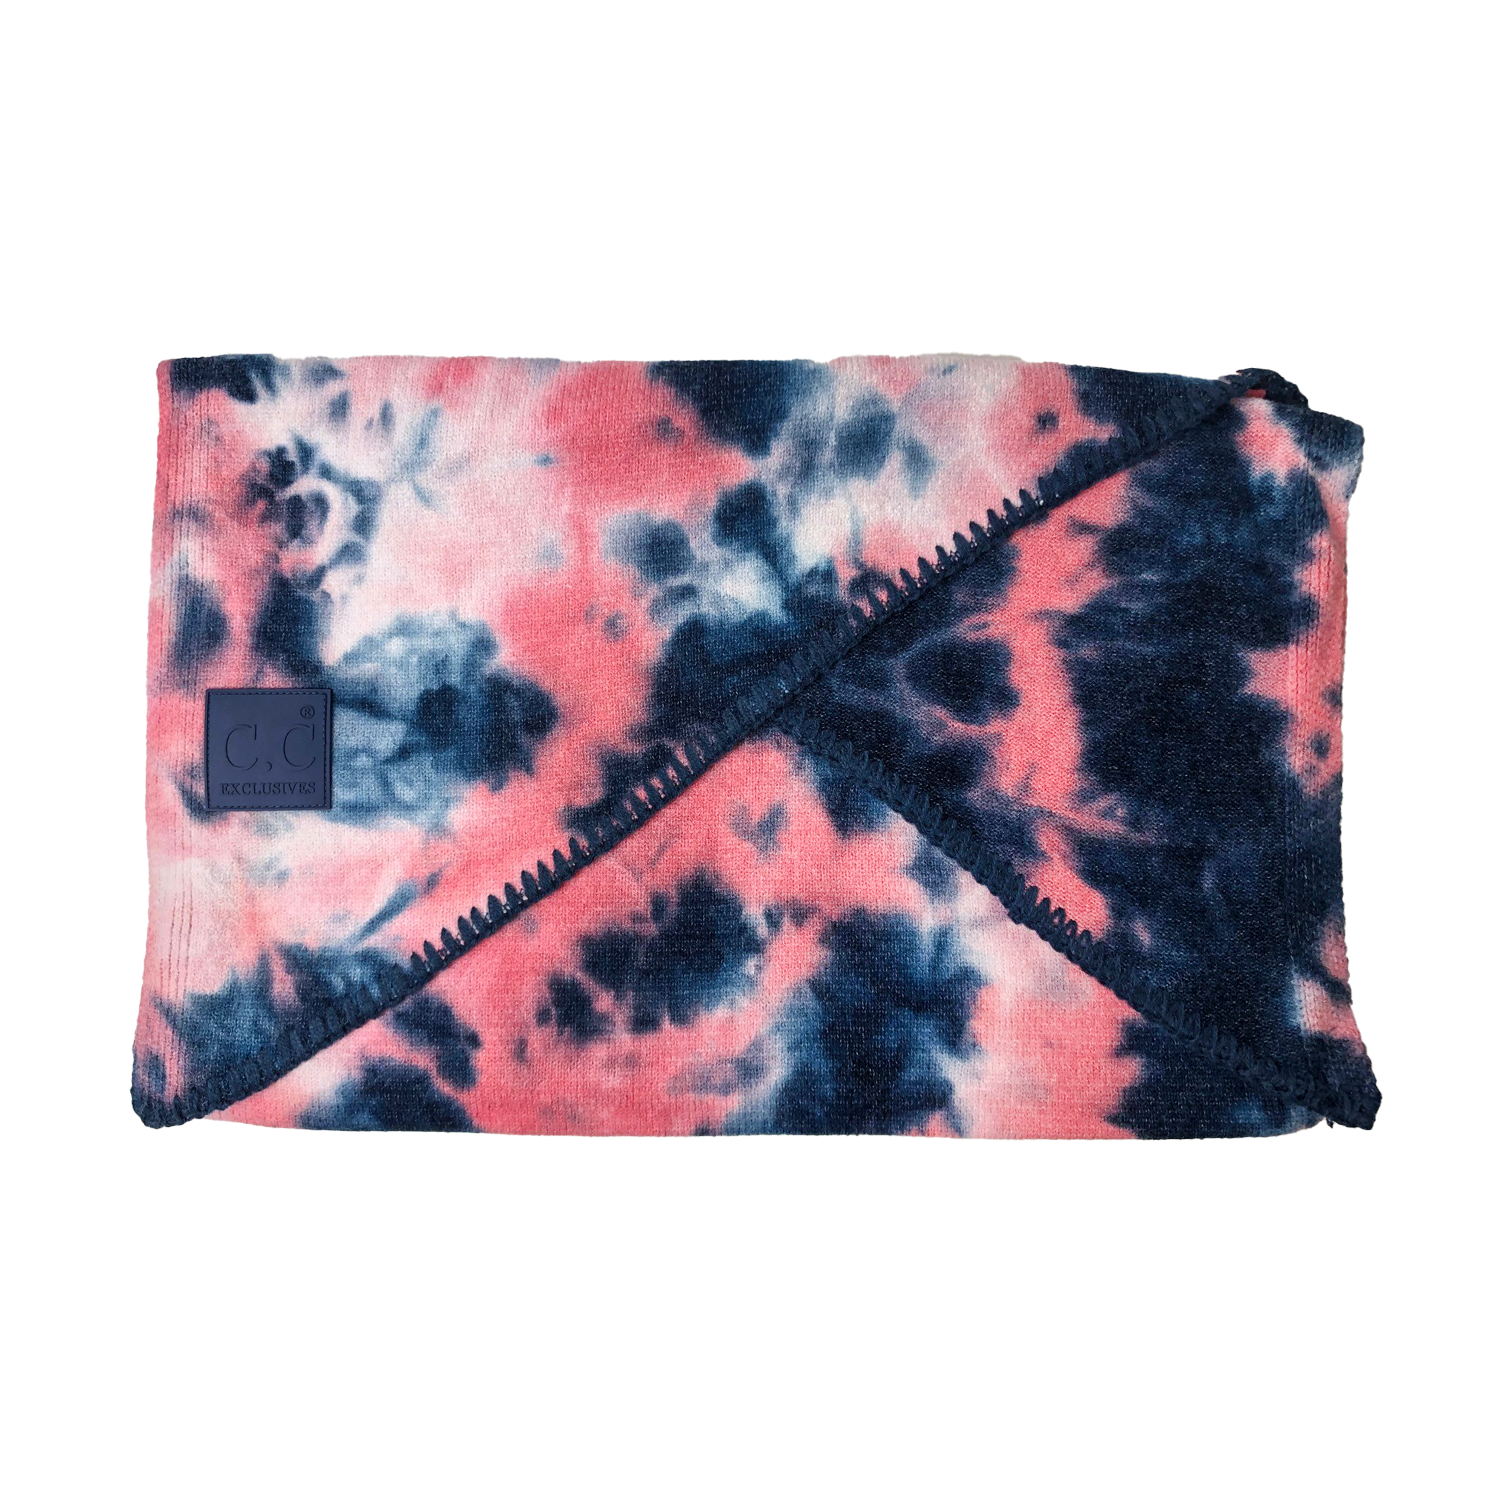 SF-7380 Tie Dye Scarf with C.C Rubber Patch - Navy/Pink